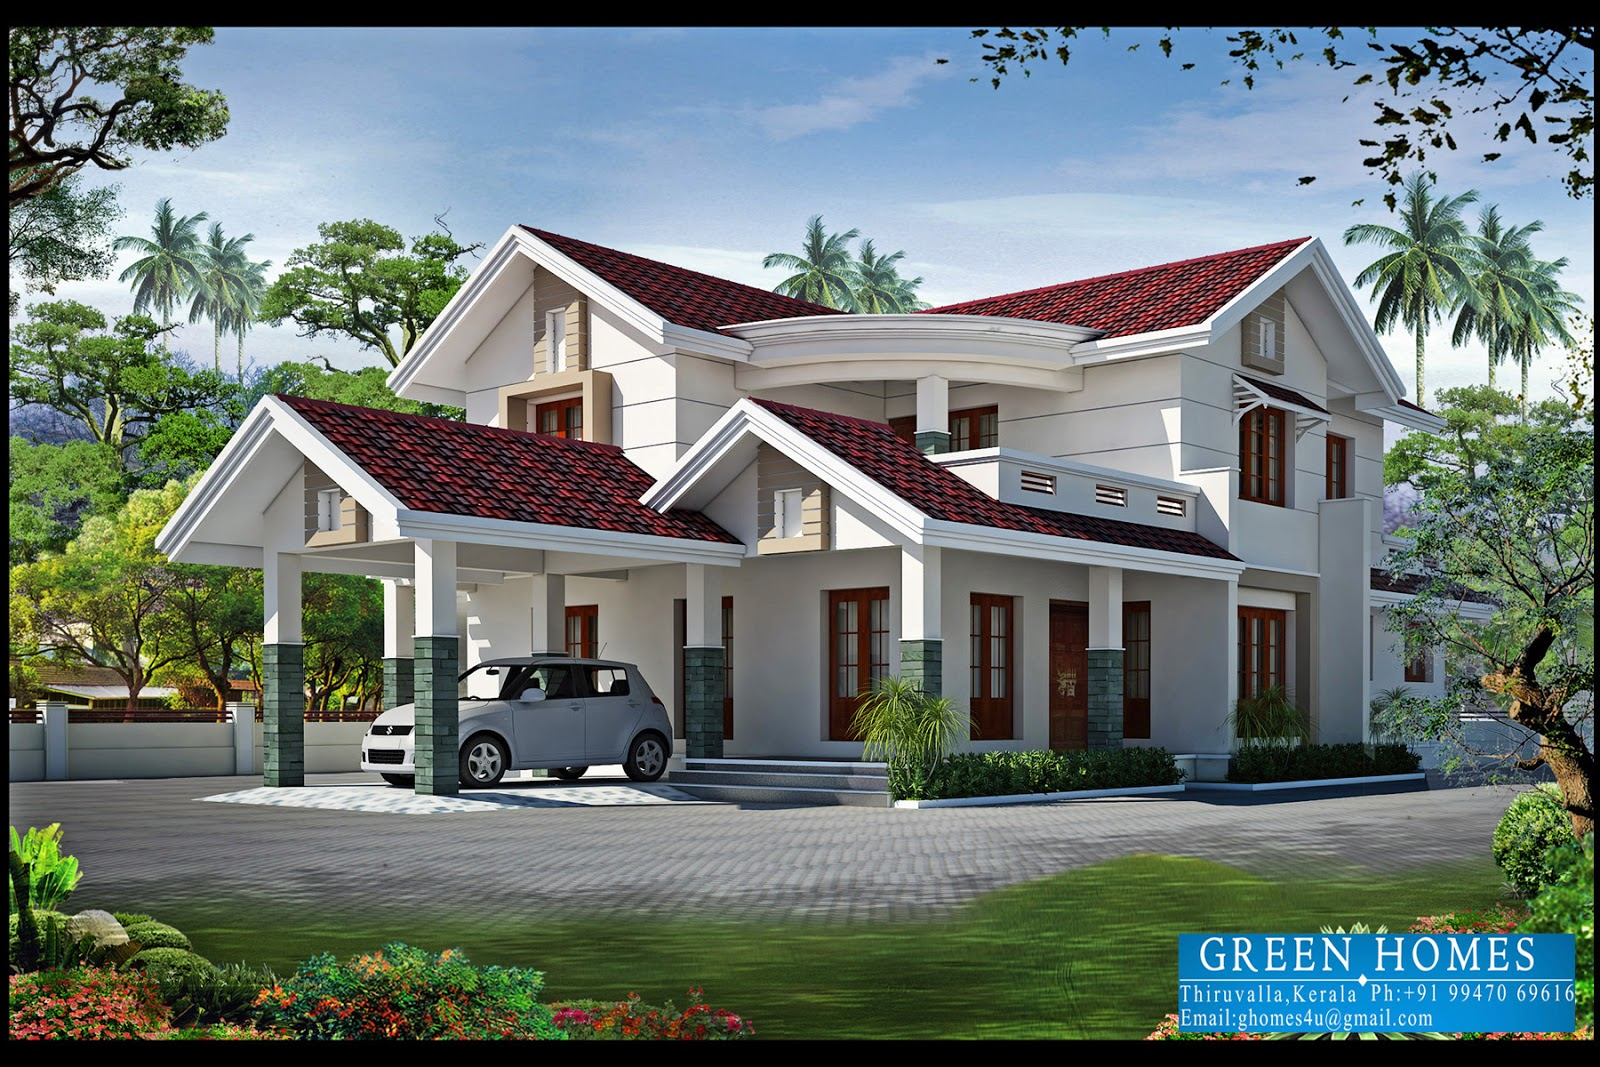 Green homes 4bhk kerala home design 2550 for Kerala house plans 2014